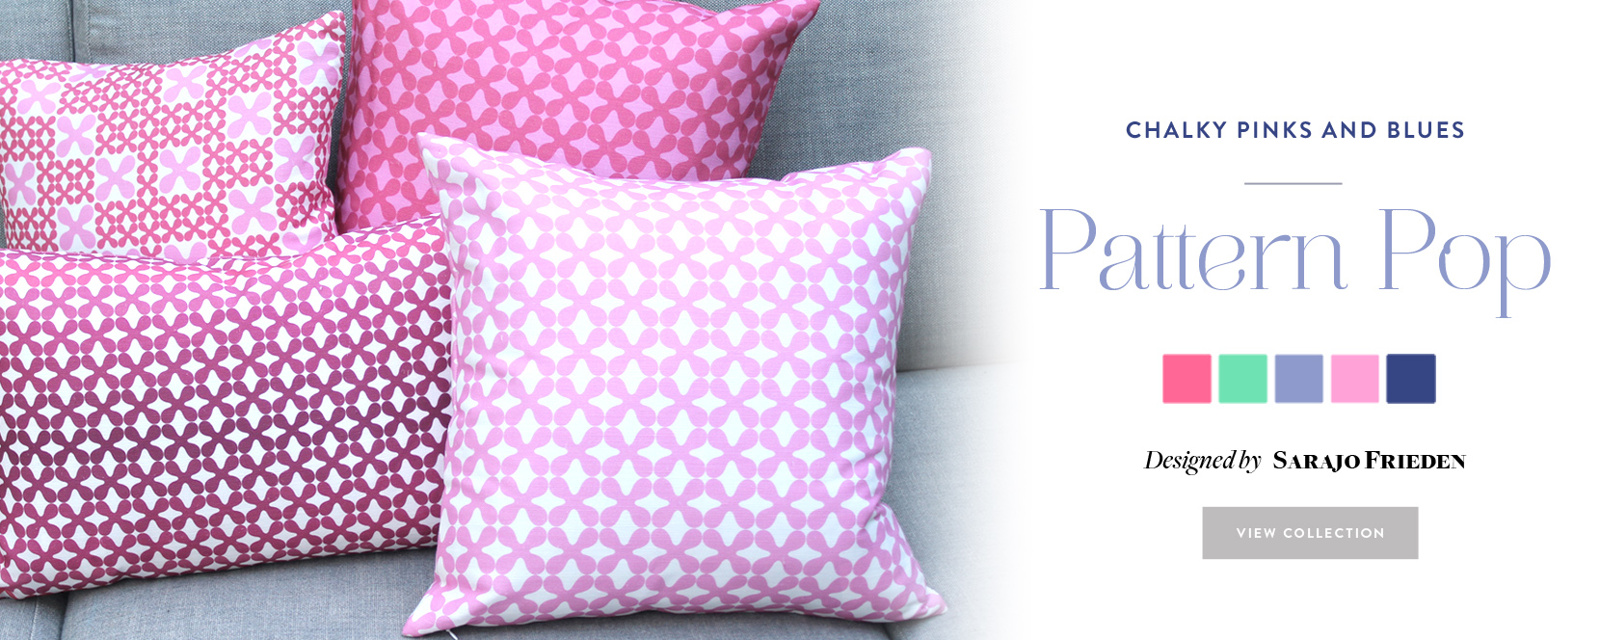 Pattern Pop: new collection at Guildery!